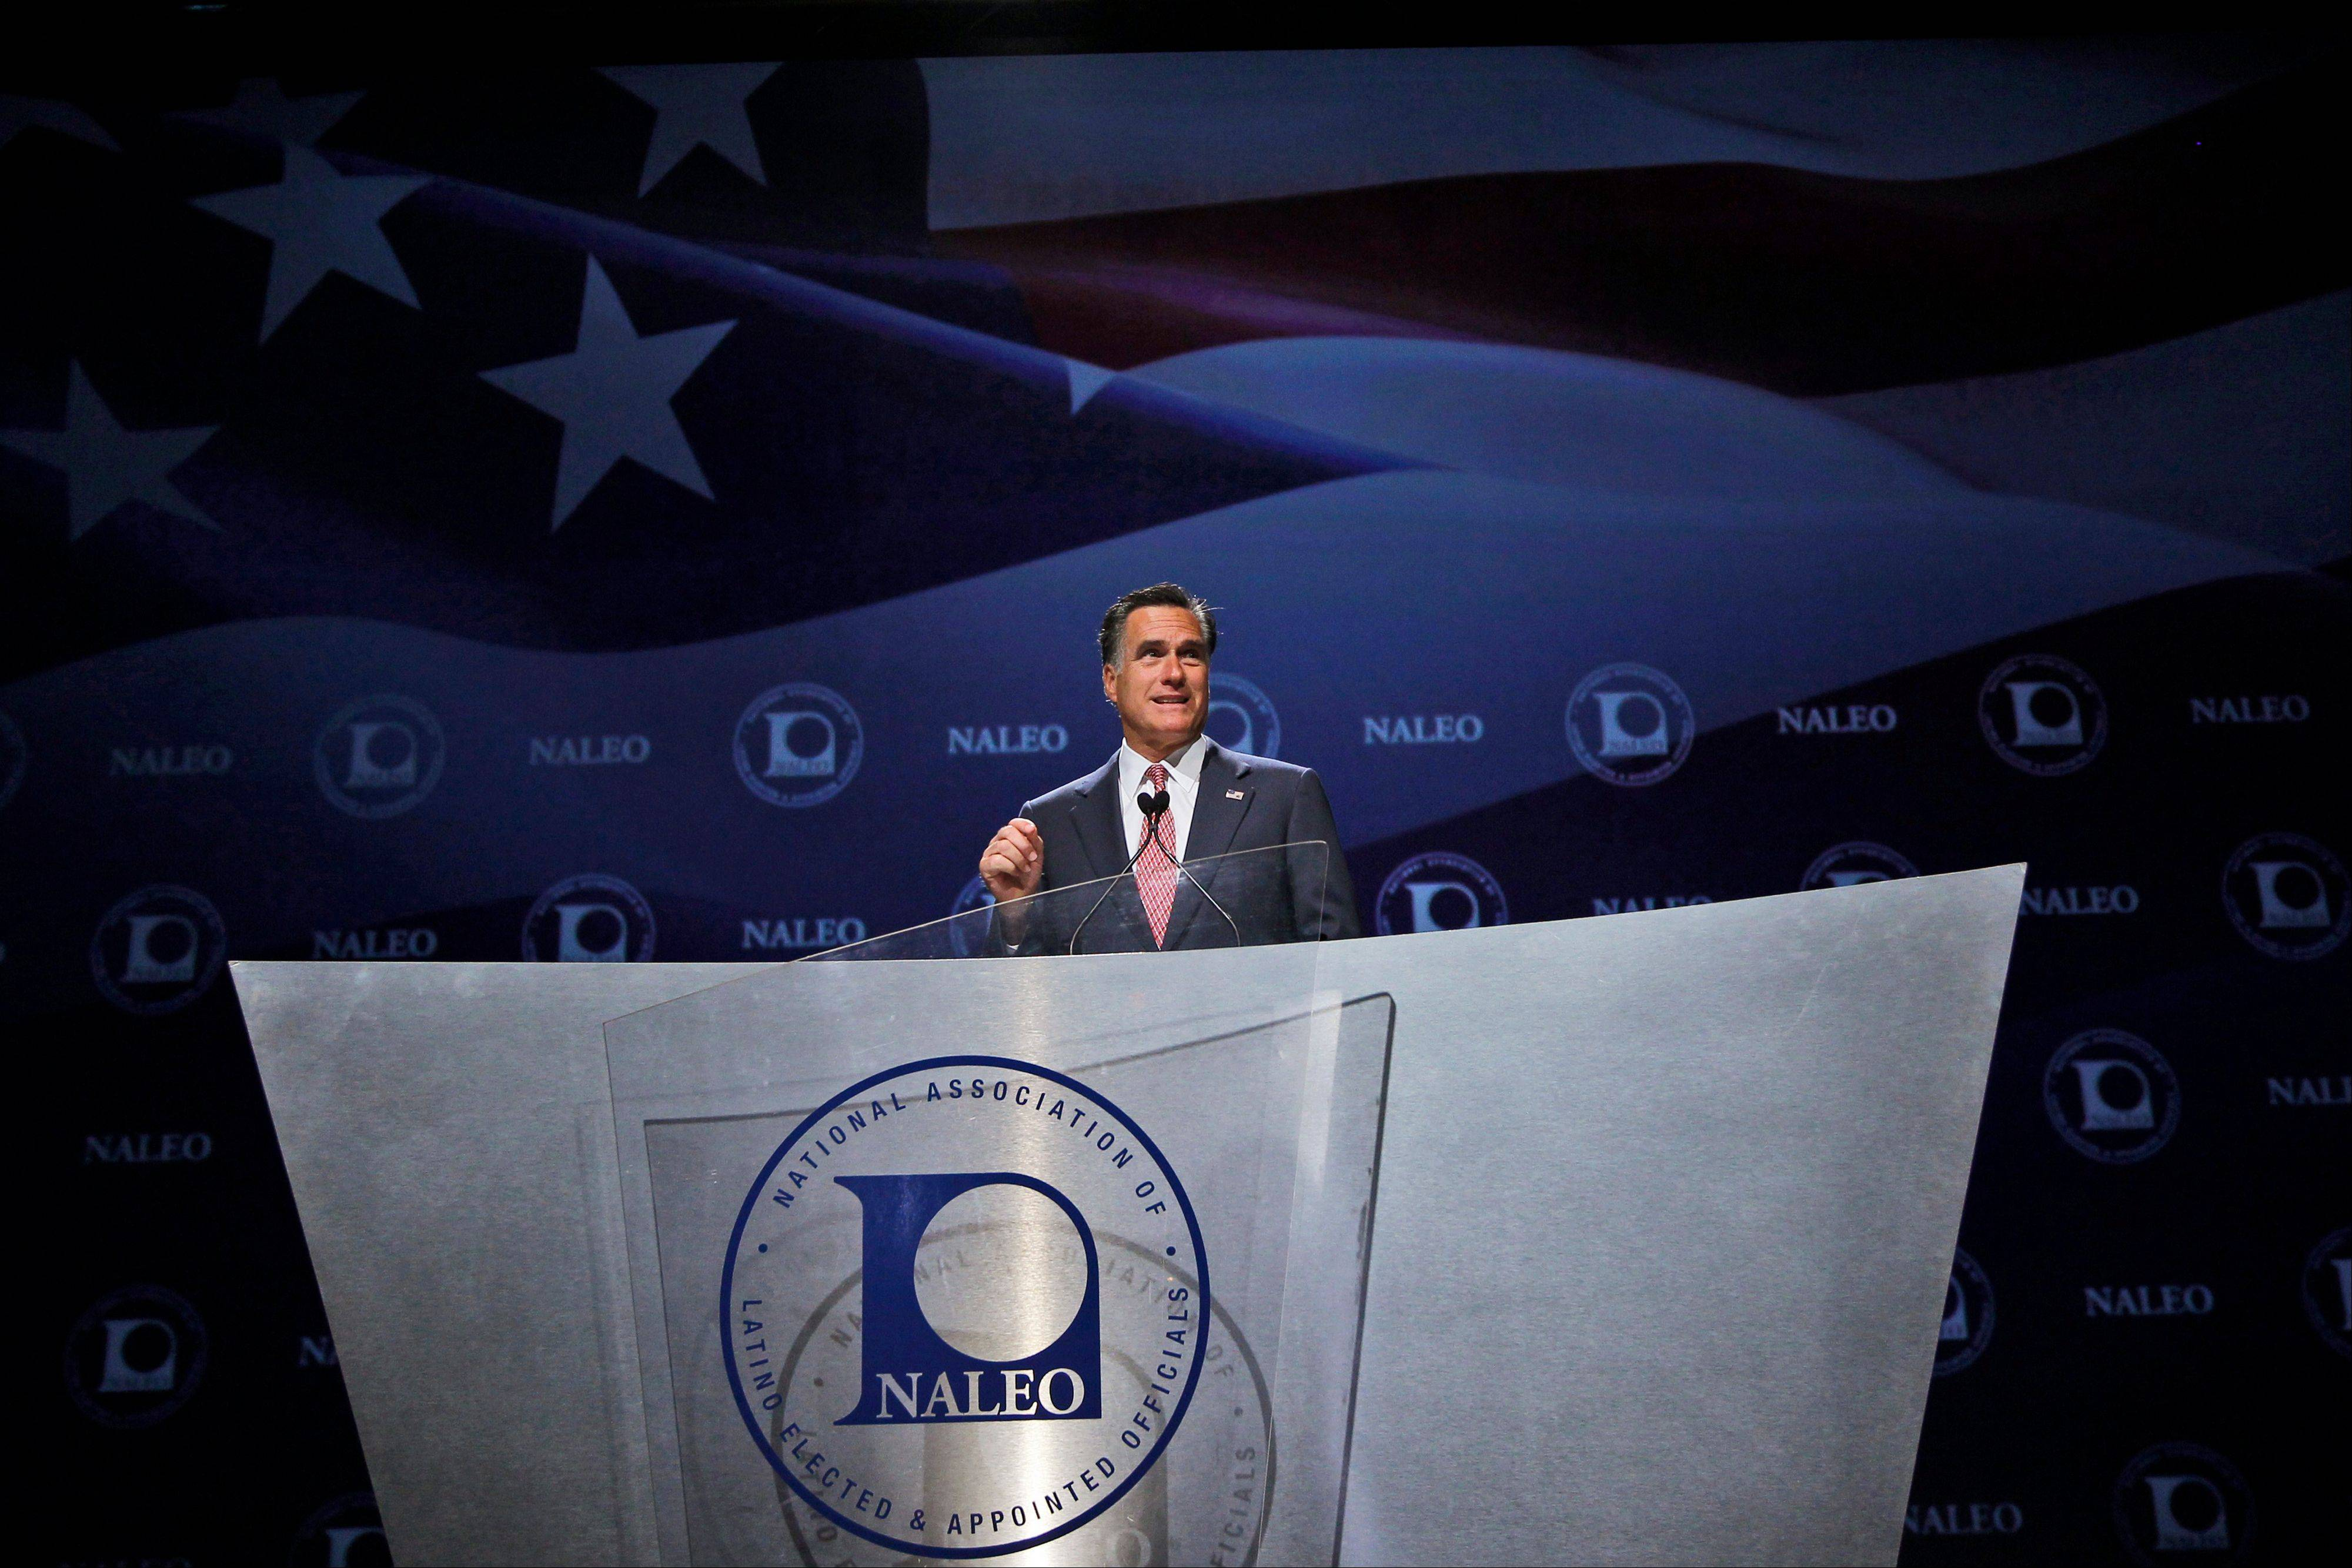 Republican presidential candidate, former Massachusetts Gov. Mitt Romney, speaks at the NALEO (National Association of Latino Elected and Appointed Officials) conference in Orlando, Fla., Thursday, June 21, 2012.